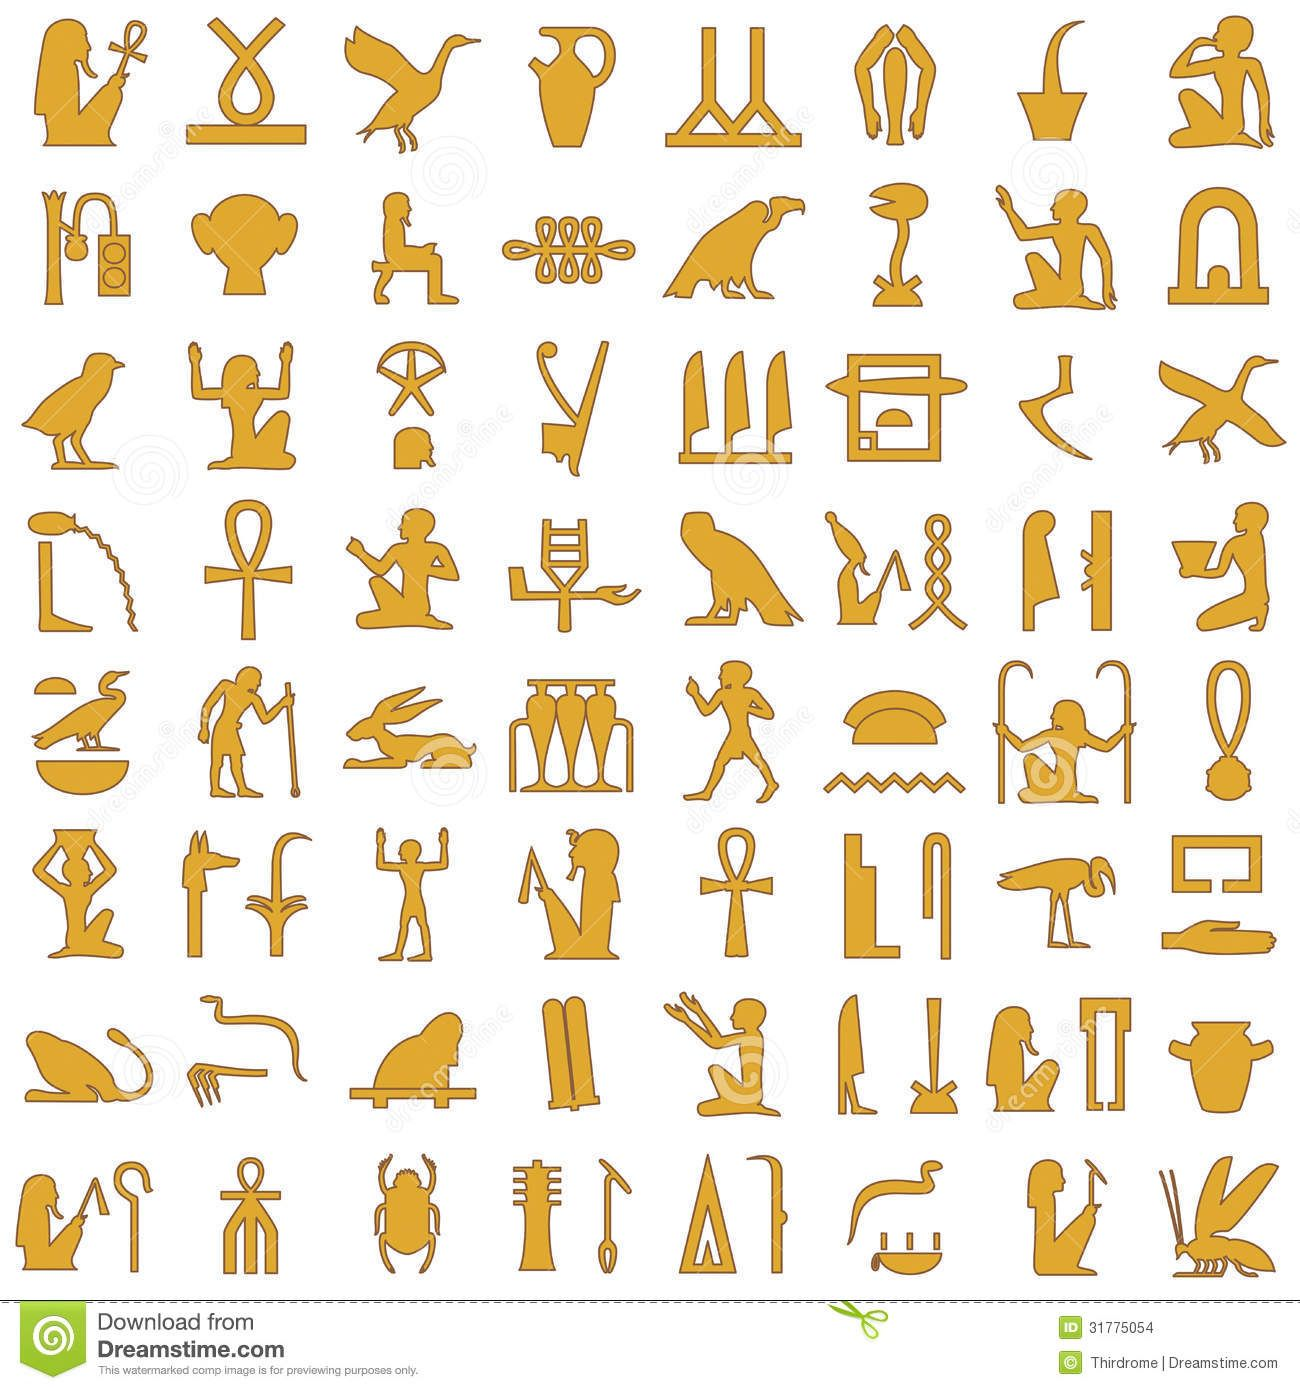 Gyptische zeichen google suche i love ich liebe photo about a collection of ancient egyptian symbolsrious egyptian hieroglyphs buycottarizona Images